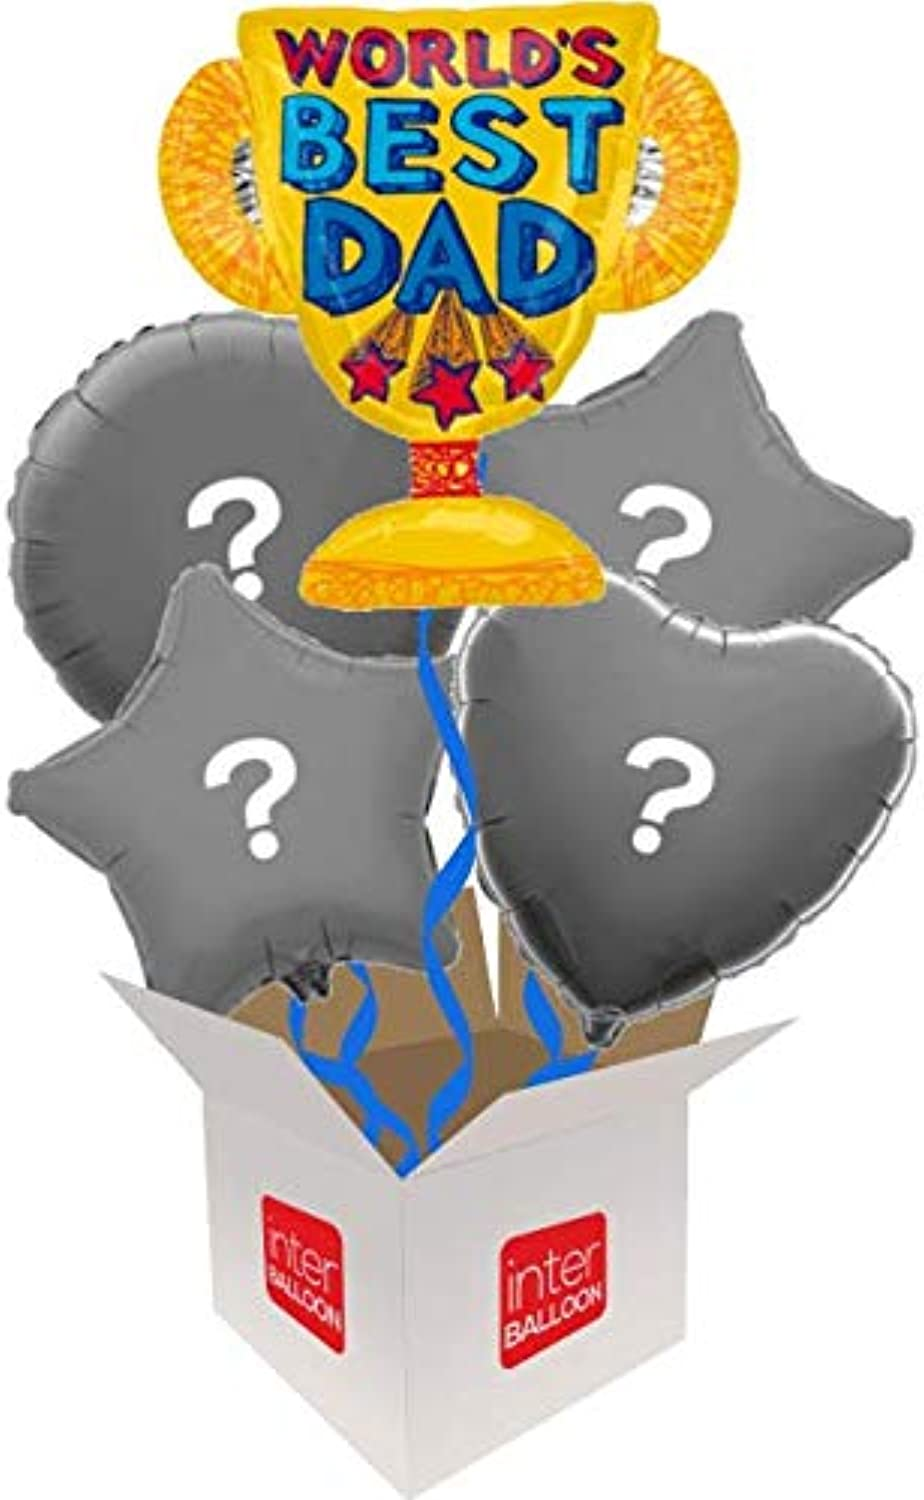 InterBalloon Helium Inflated 27  World's Best Dad Trophy Balloon Delivered in a Box with 4 Extra Balloons of your choice